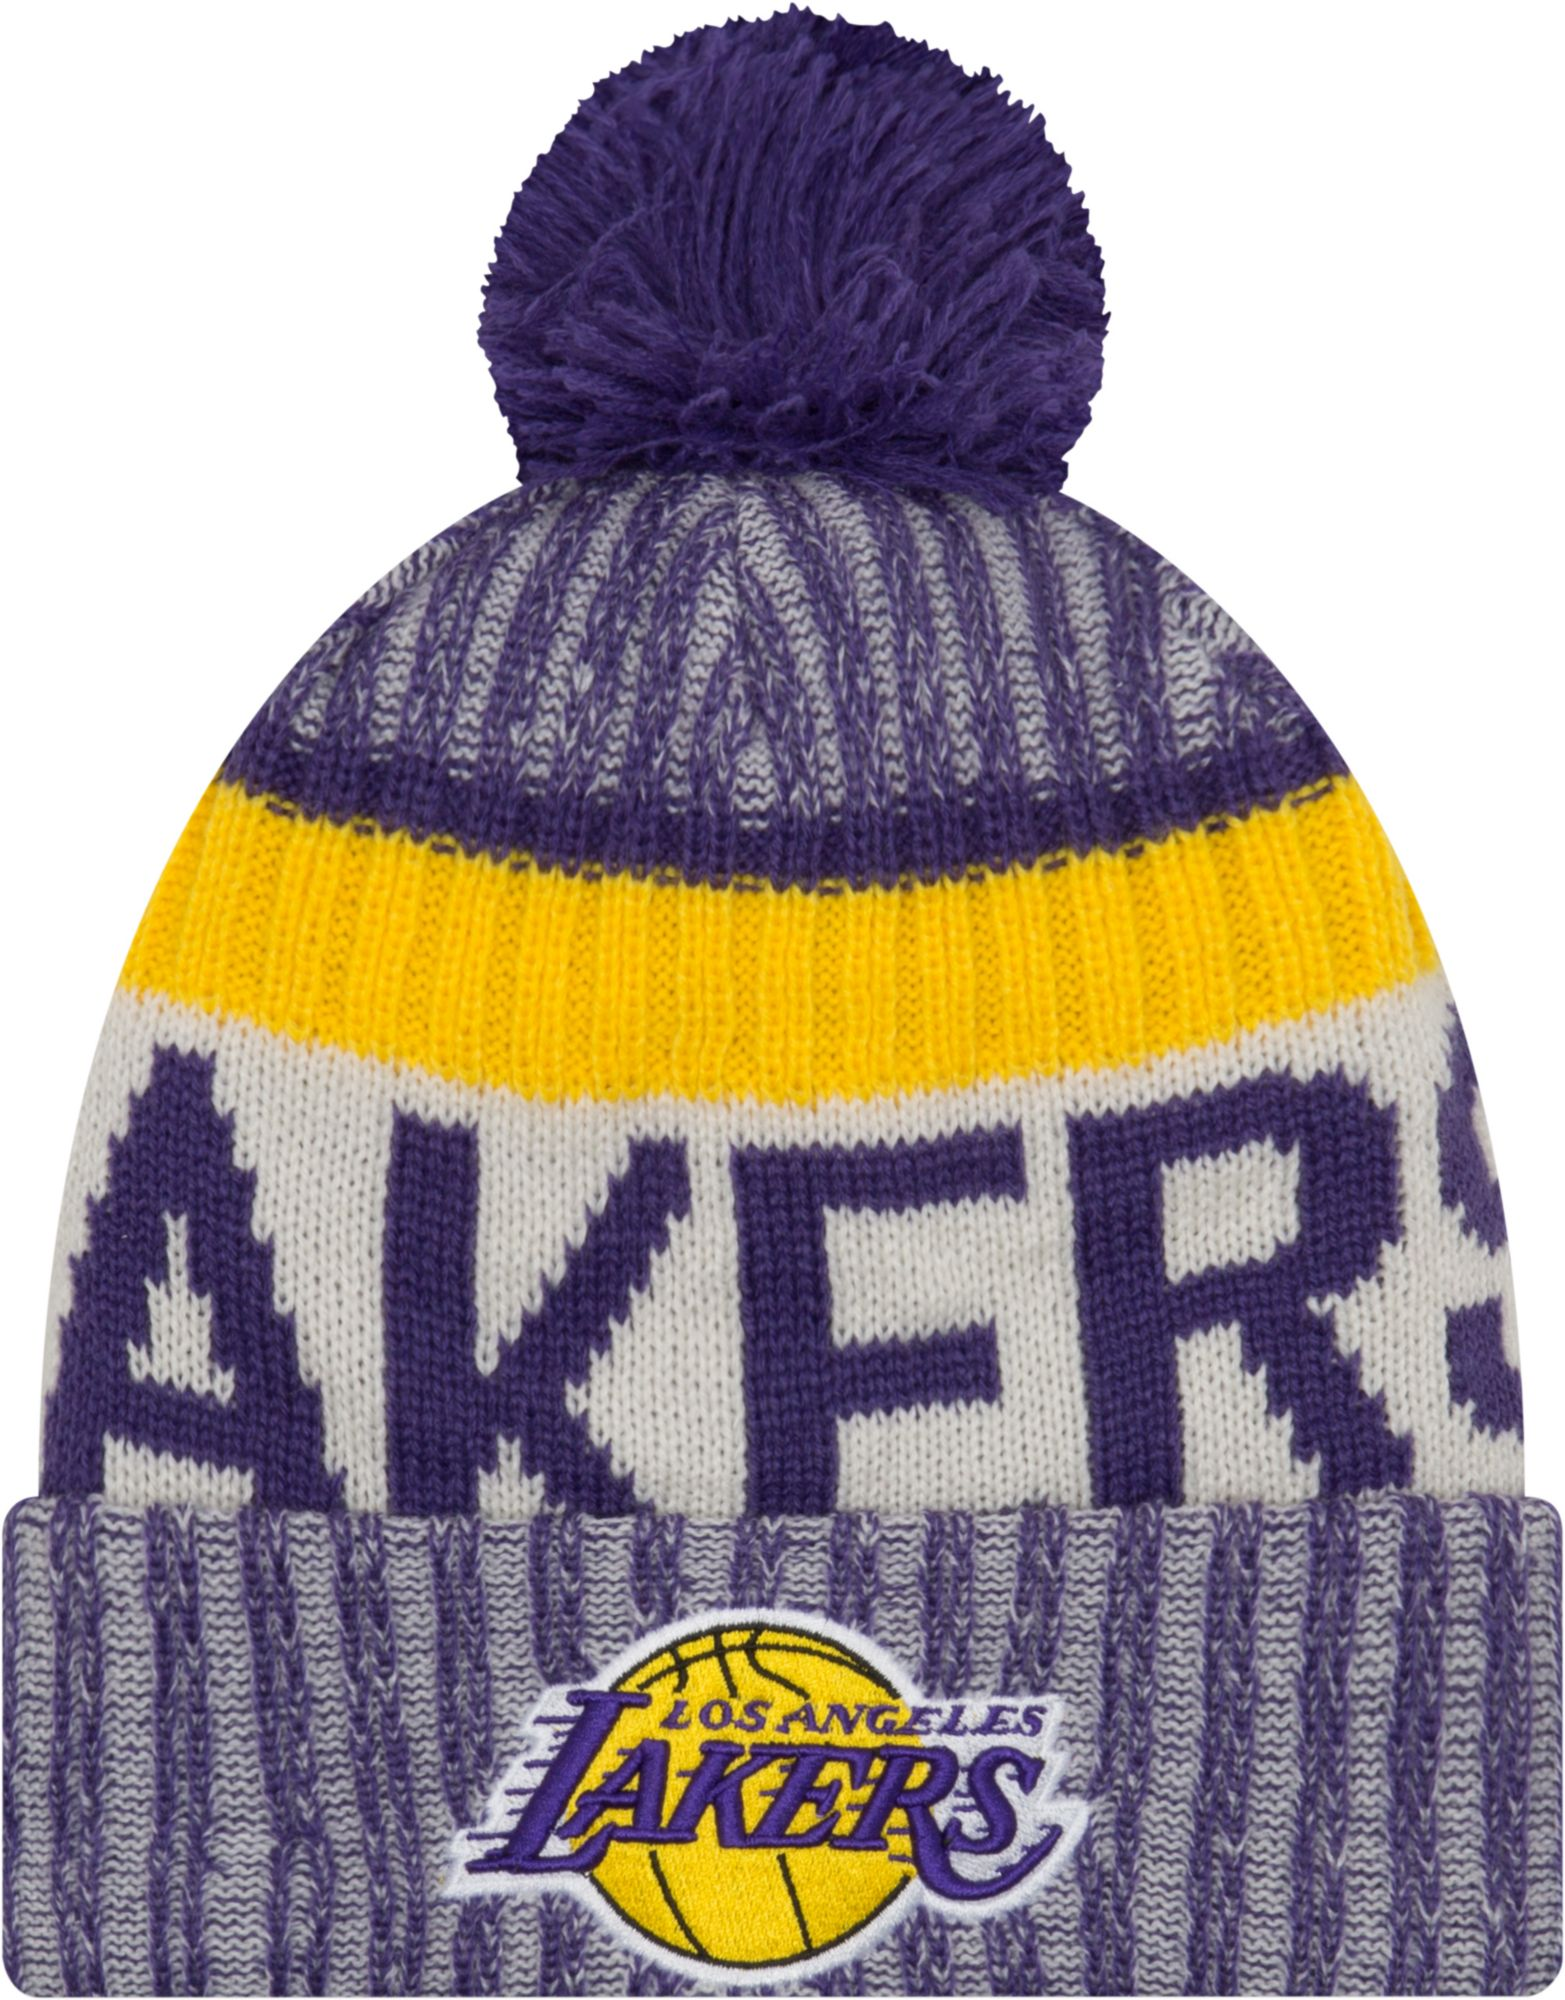 New Era Youth Los Angeles Lakers Knit Hat e5220d65799